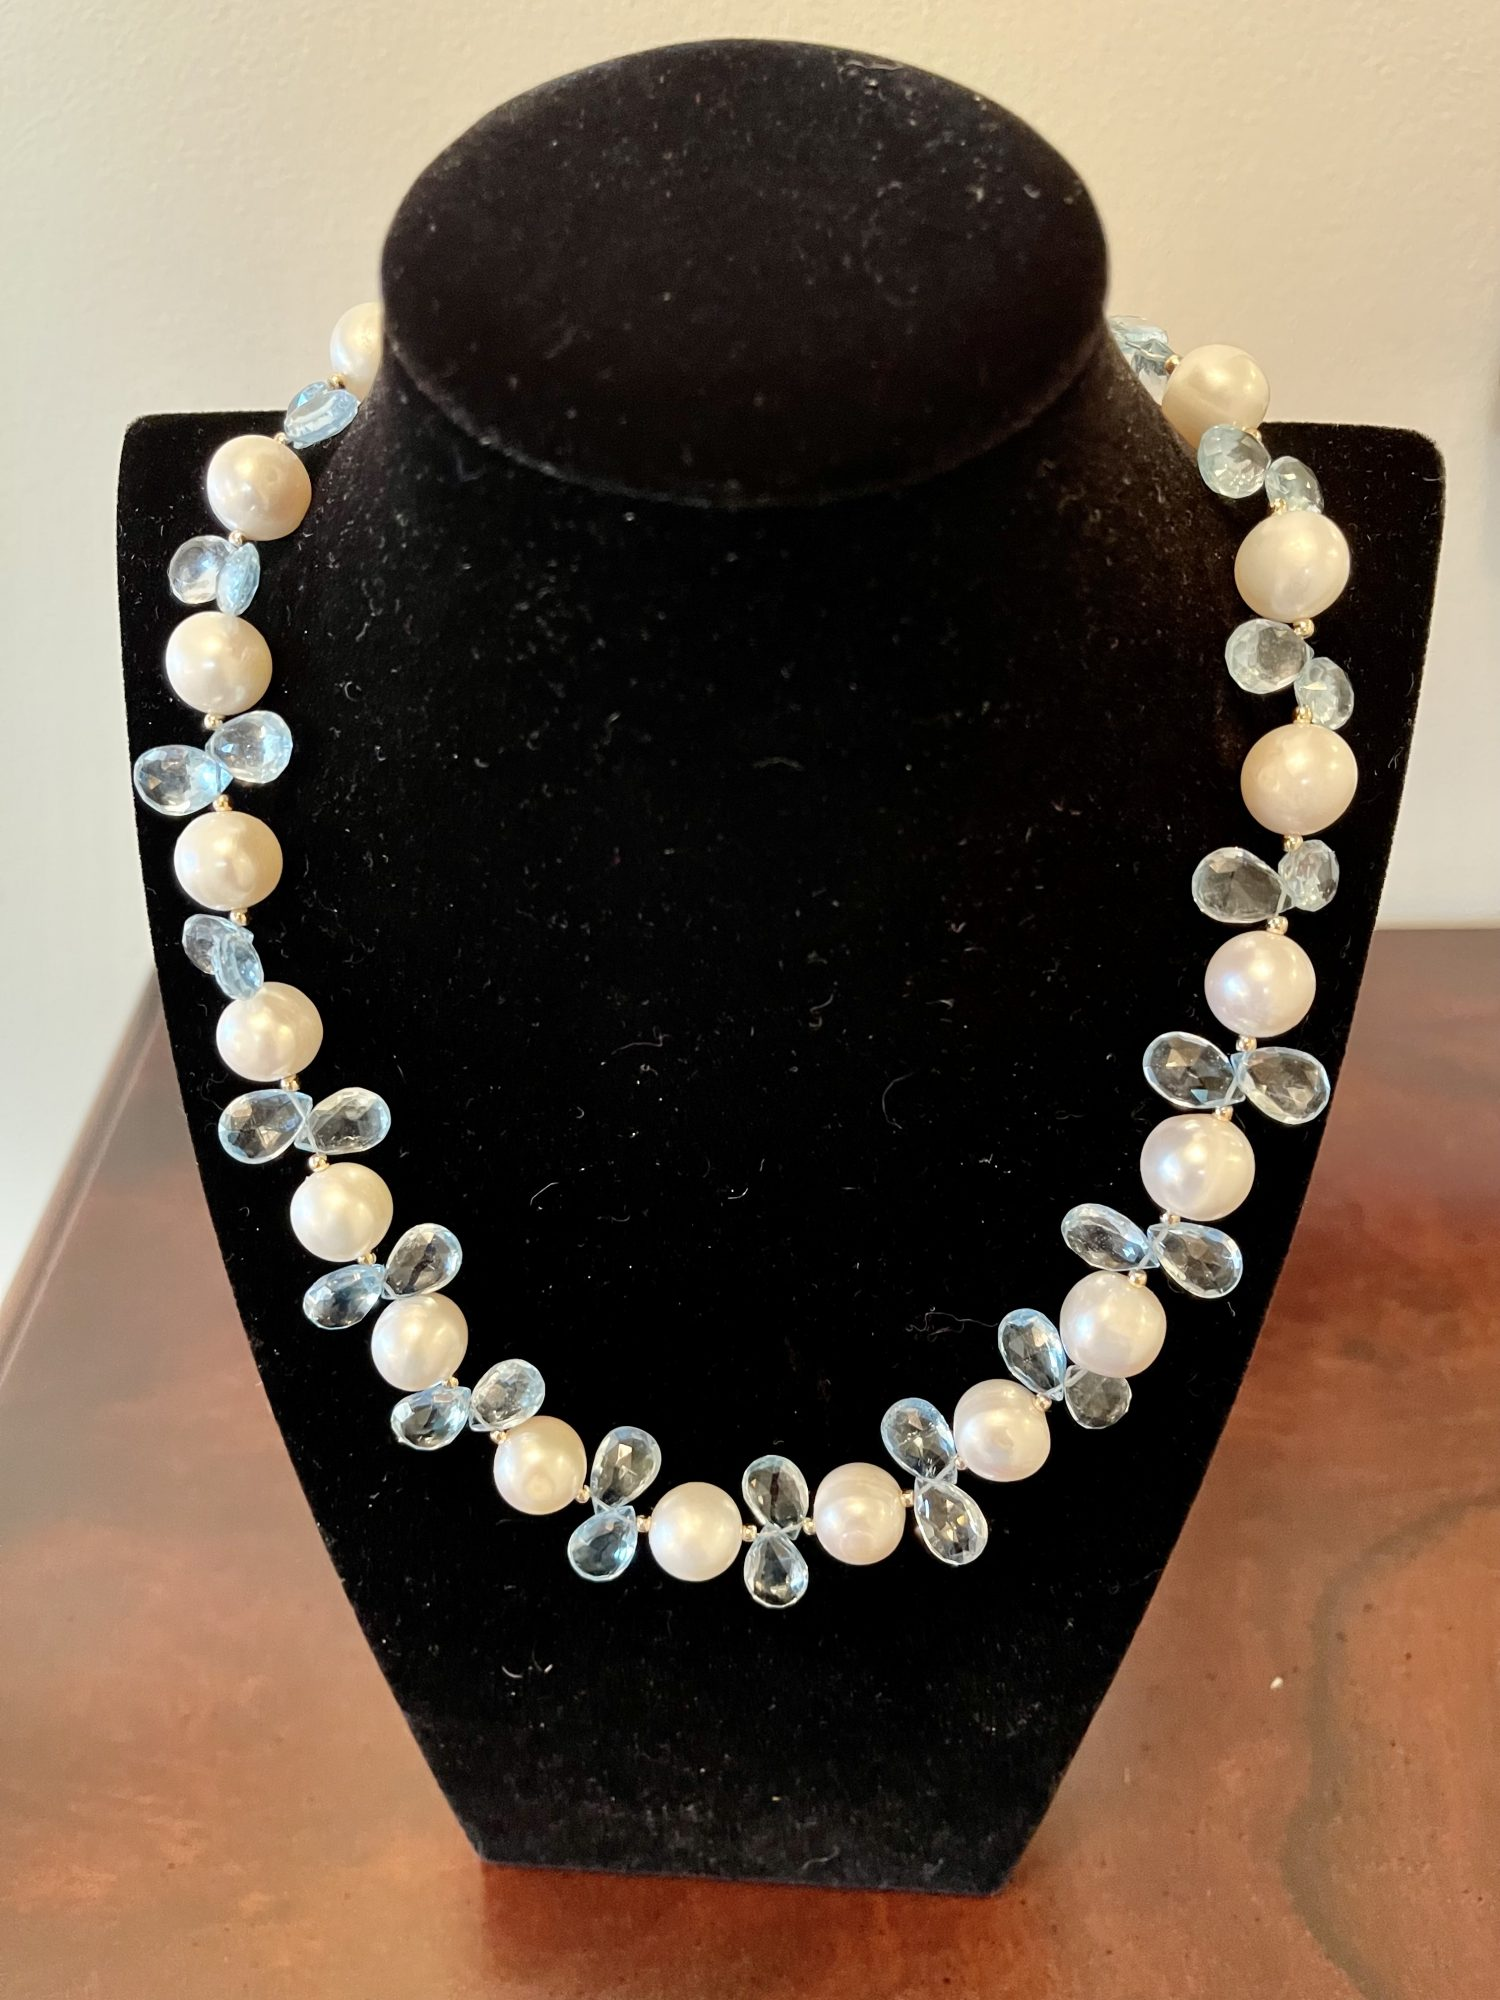 Freshwater Pearl necklace with Blue Topaz